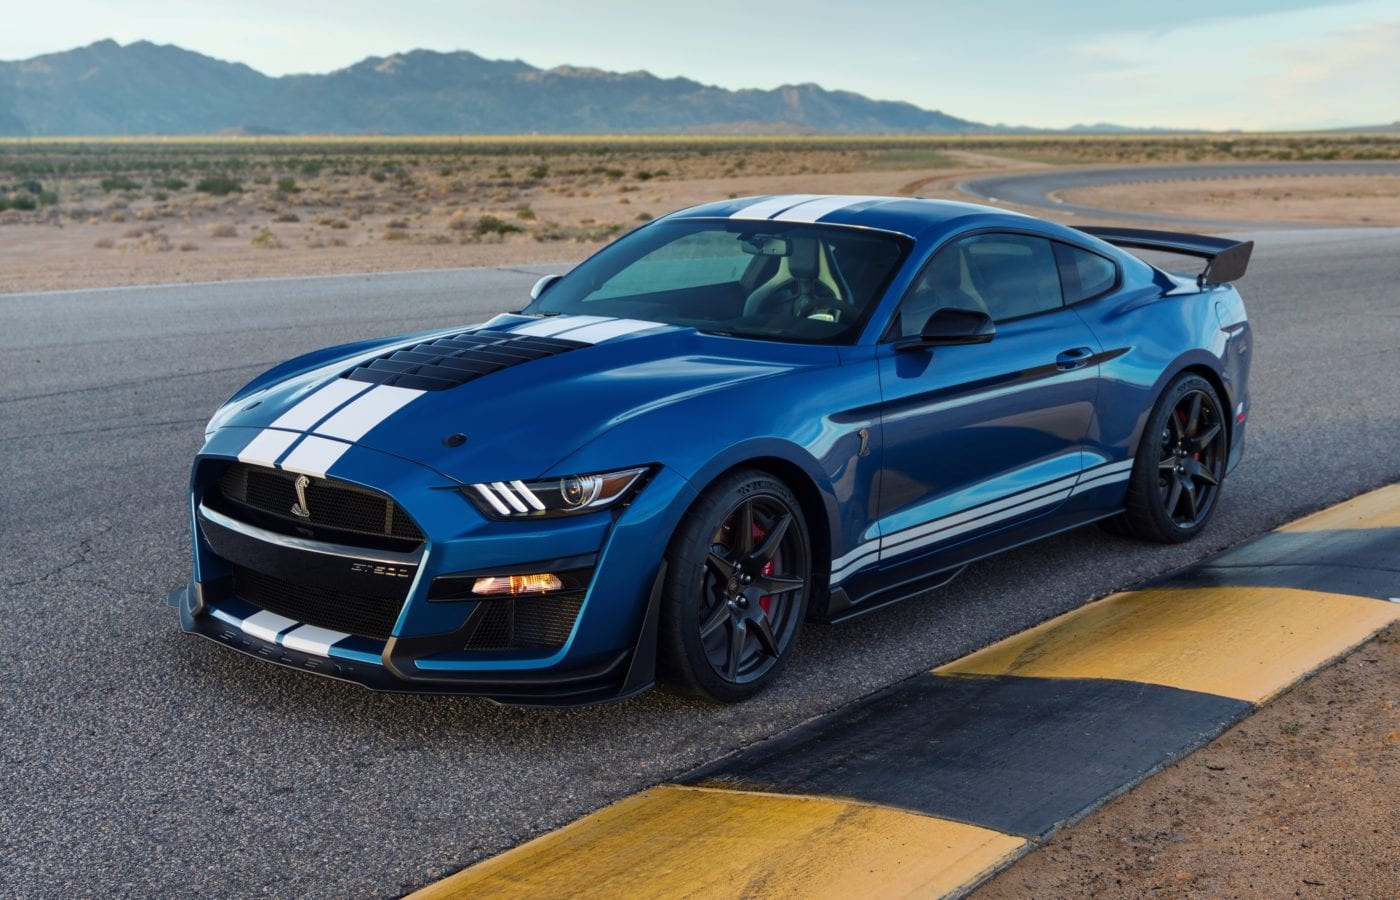 Ford Mustang Shelby >> 2020 Ford Mustang Shelby Gt500 Horsepower And Torque Revealed